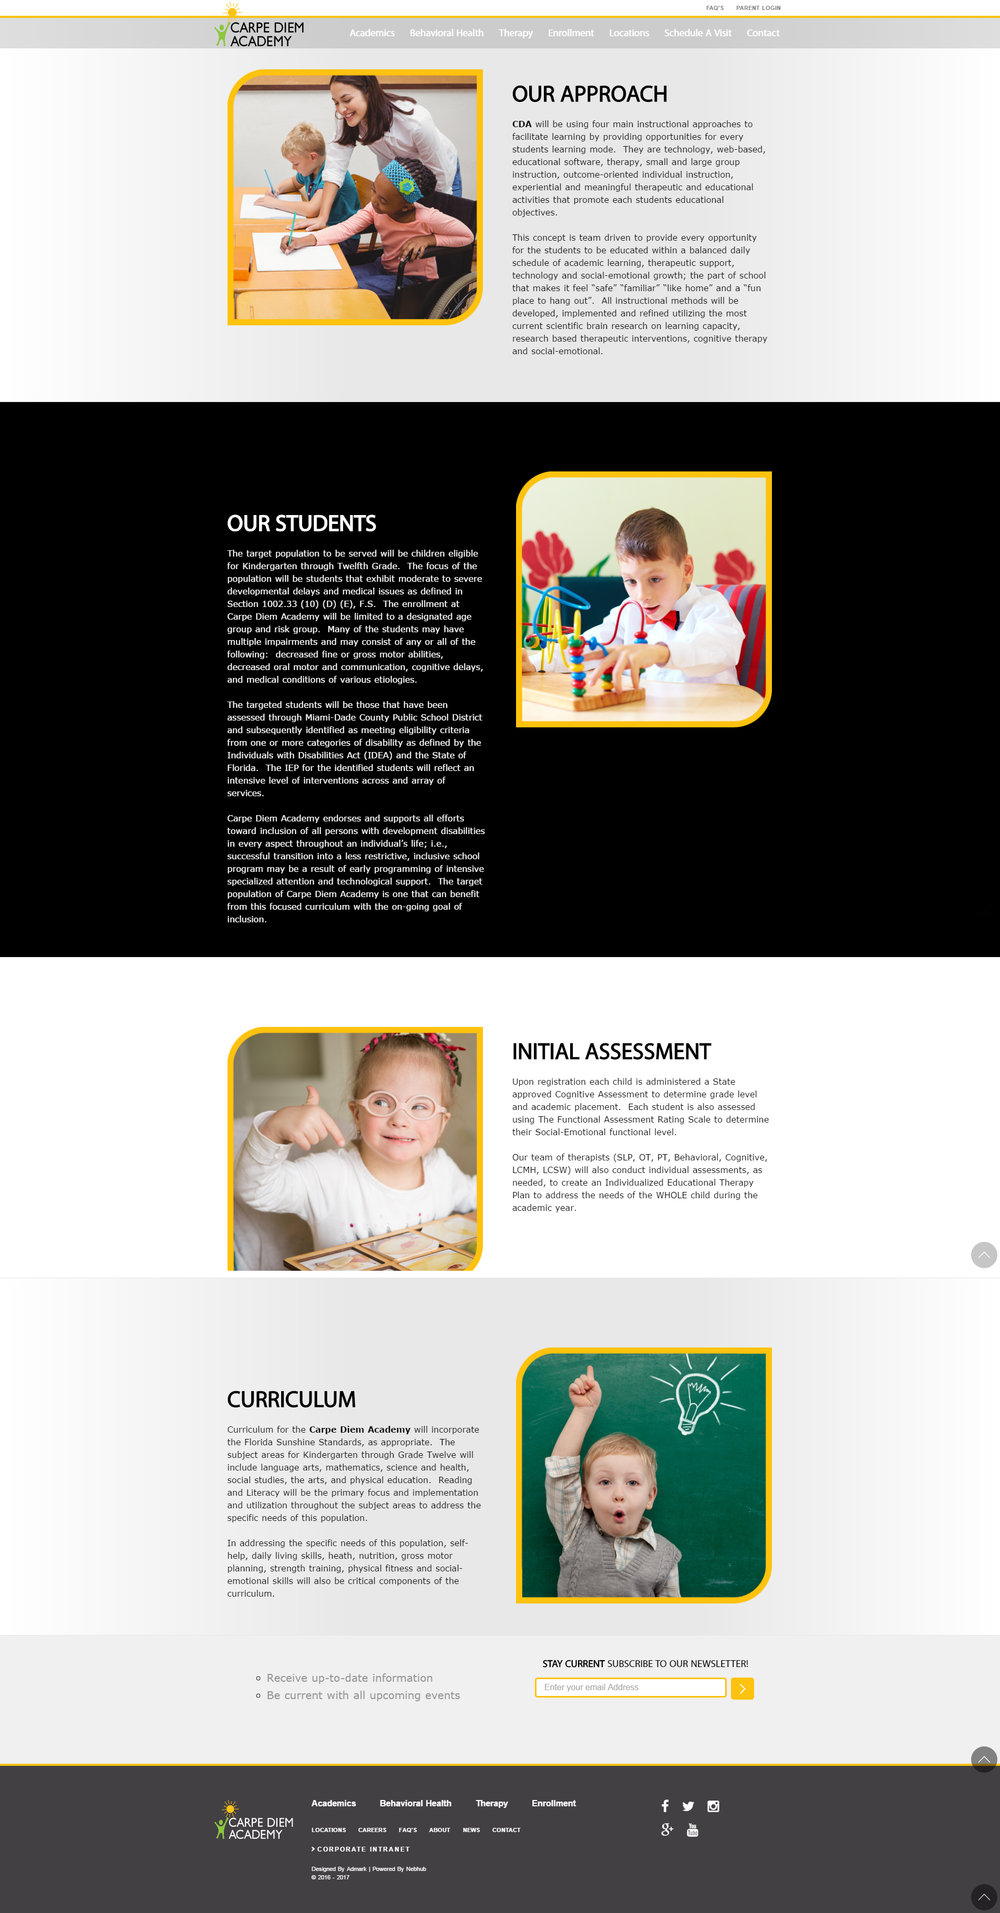 Carpe Diem Academy website